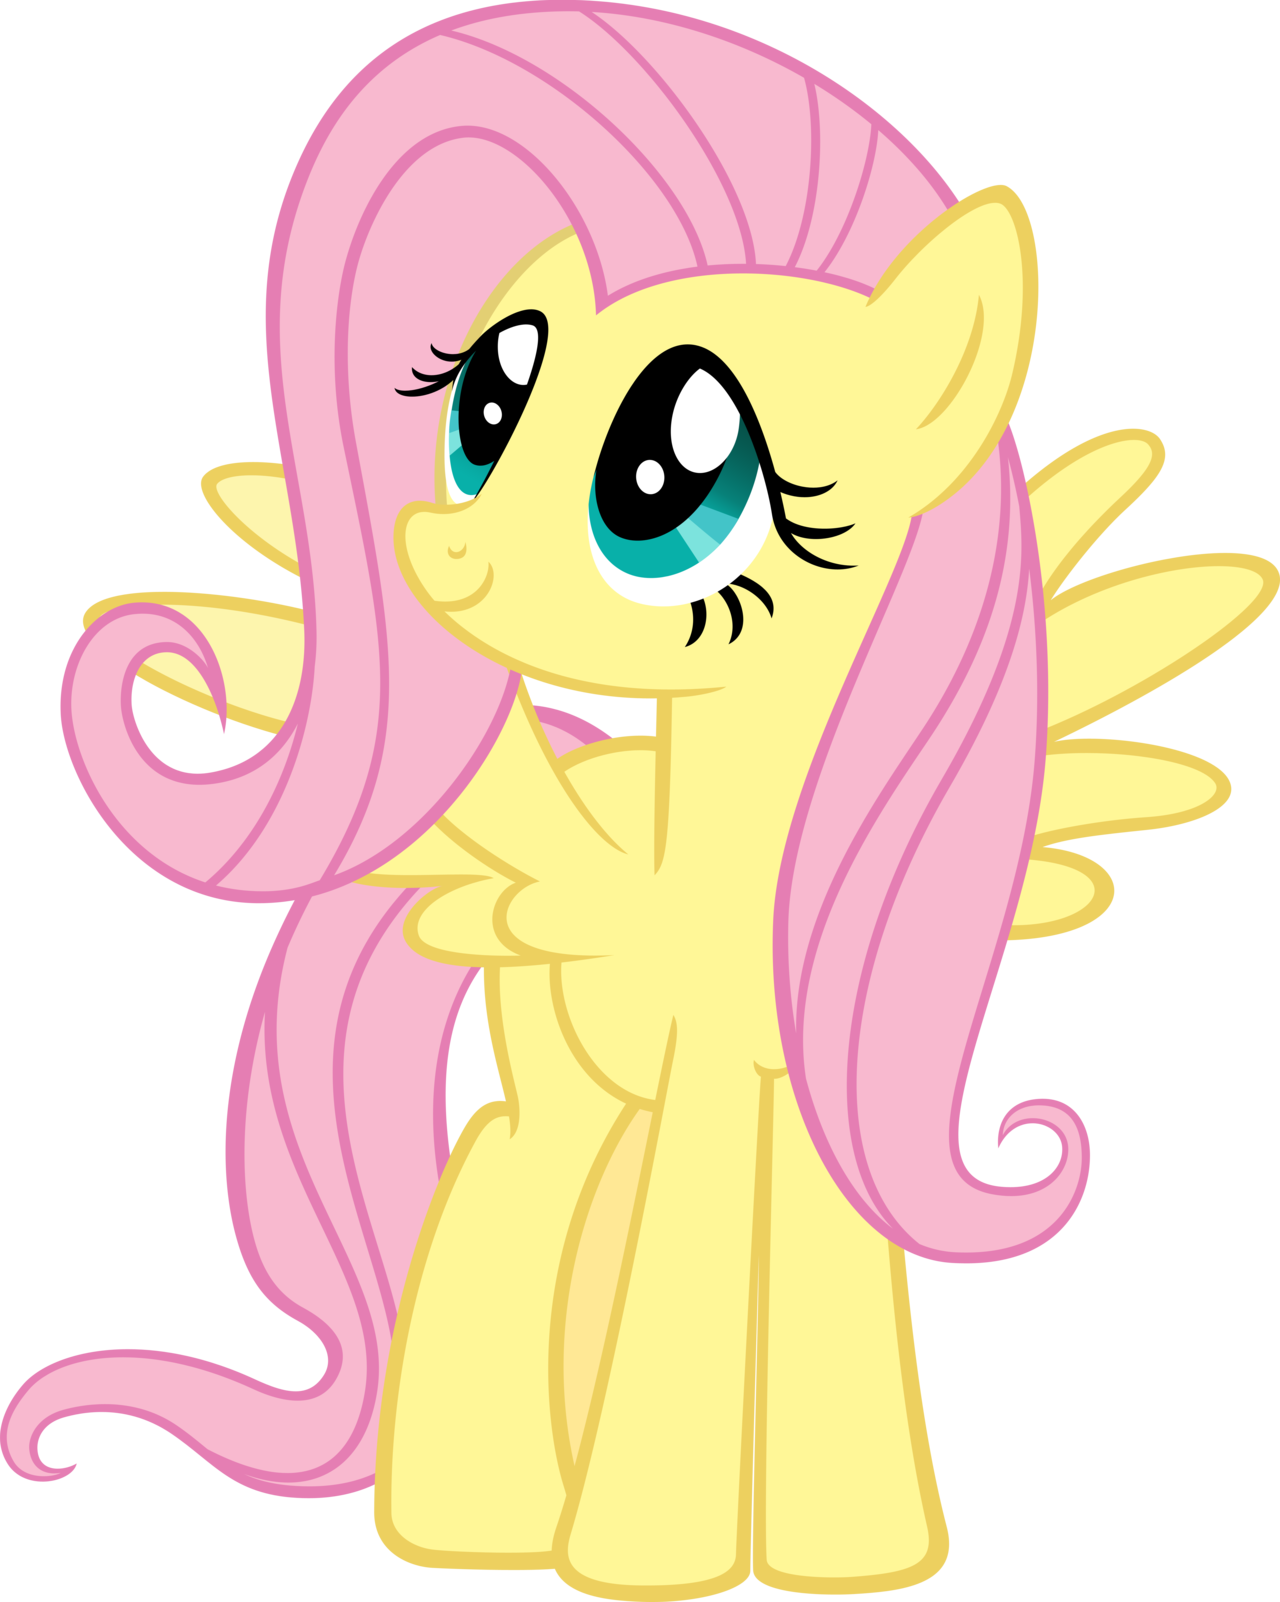 little pony png transparent little pony images #28028